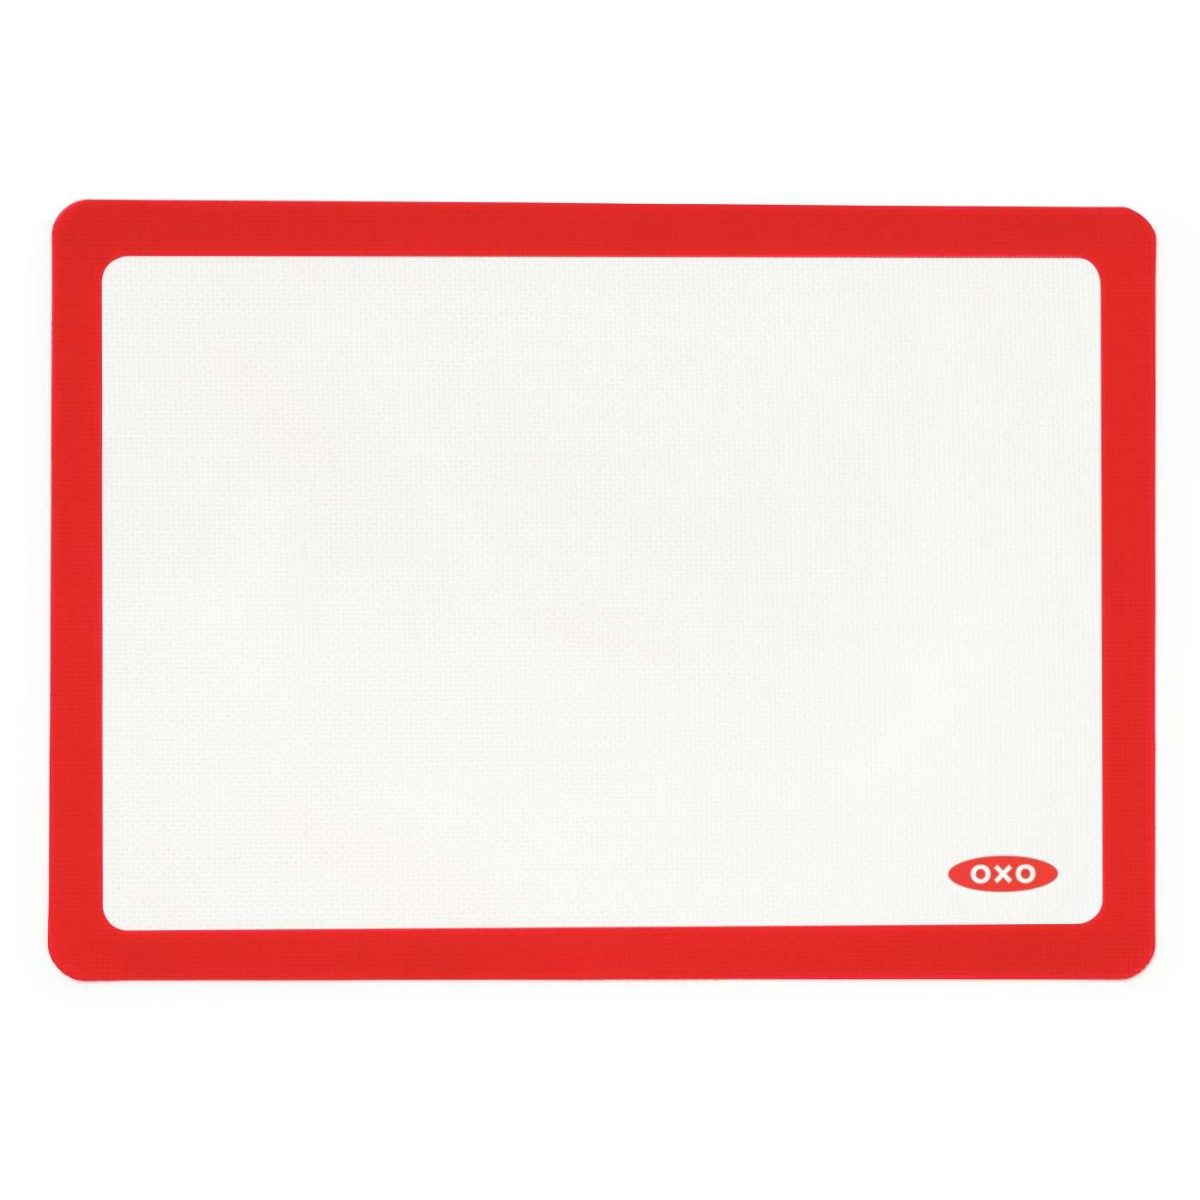 OXO Silicone Baking Mat